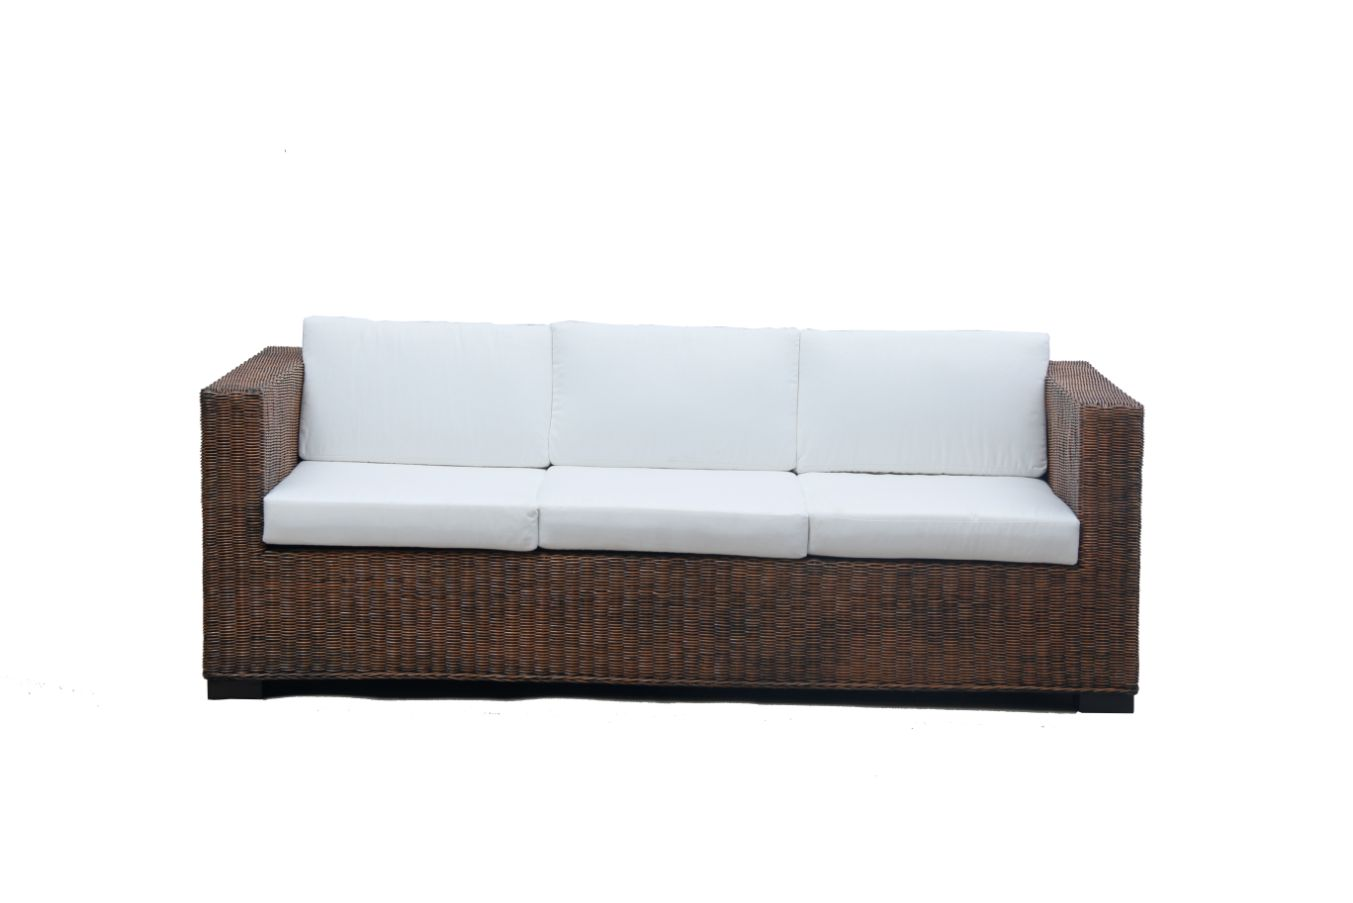 Rattan Furniture 3